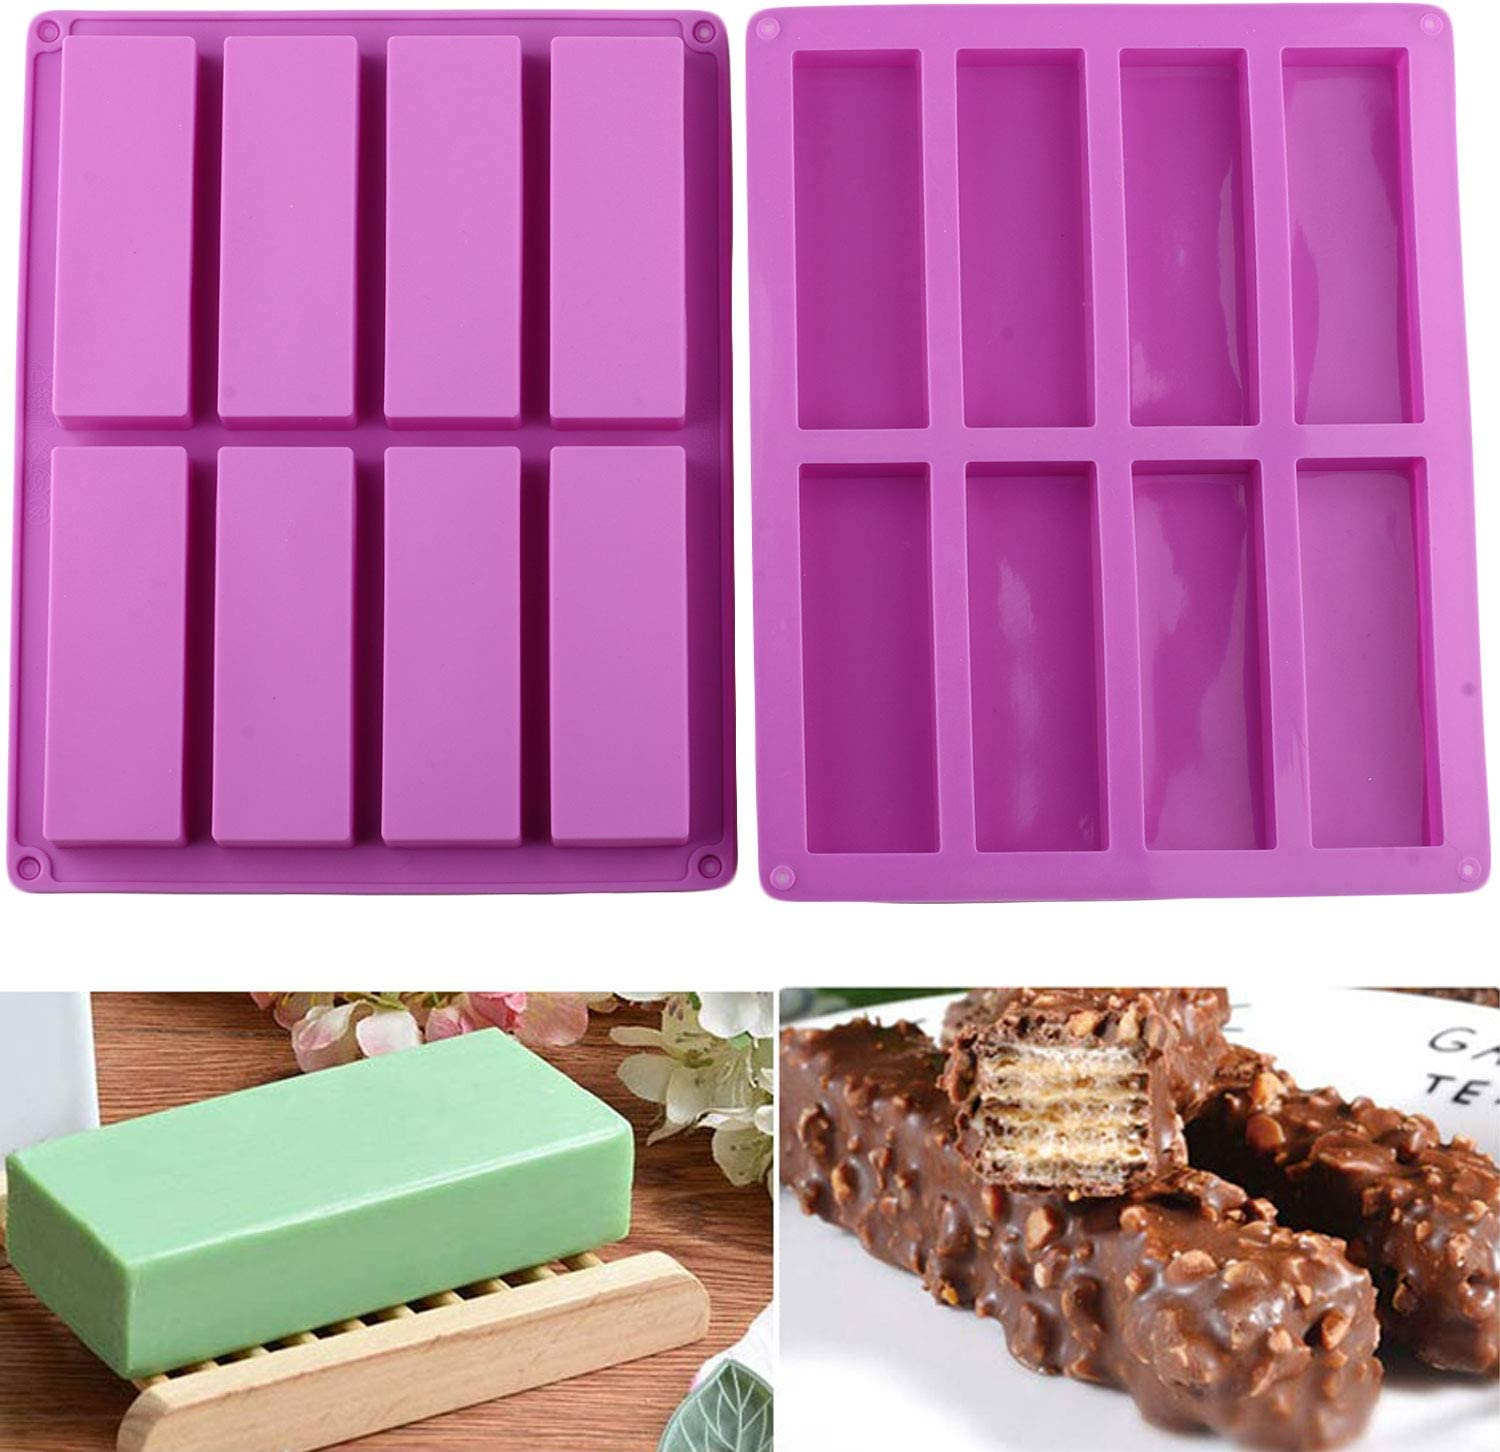 Mujiang 8 Cavity Large Rectangle Granola Bar Silicone Molds Nutrition Cereal Bar Molds Set of 2